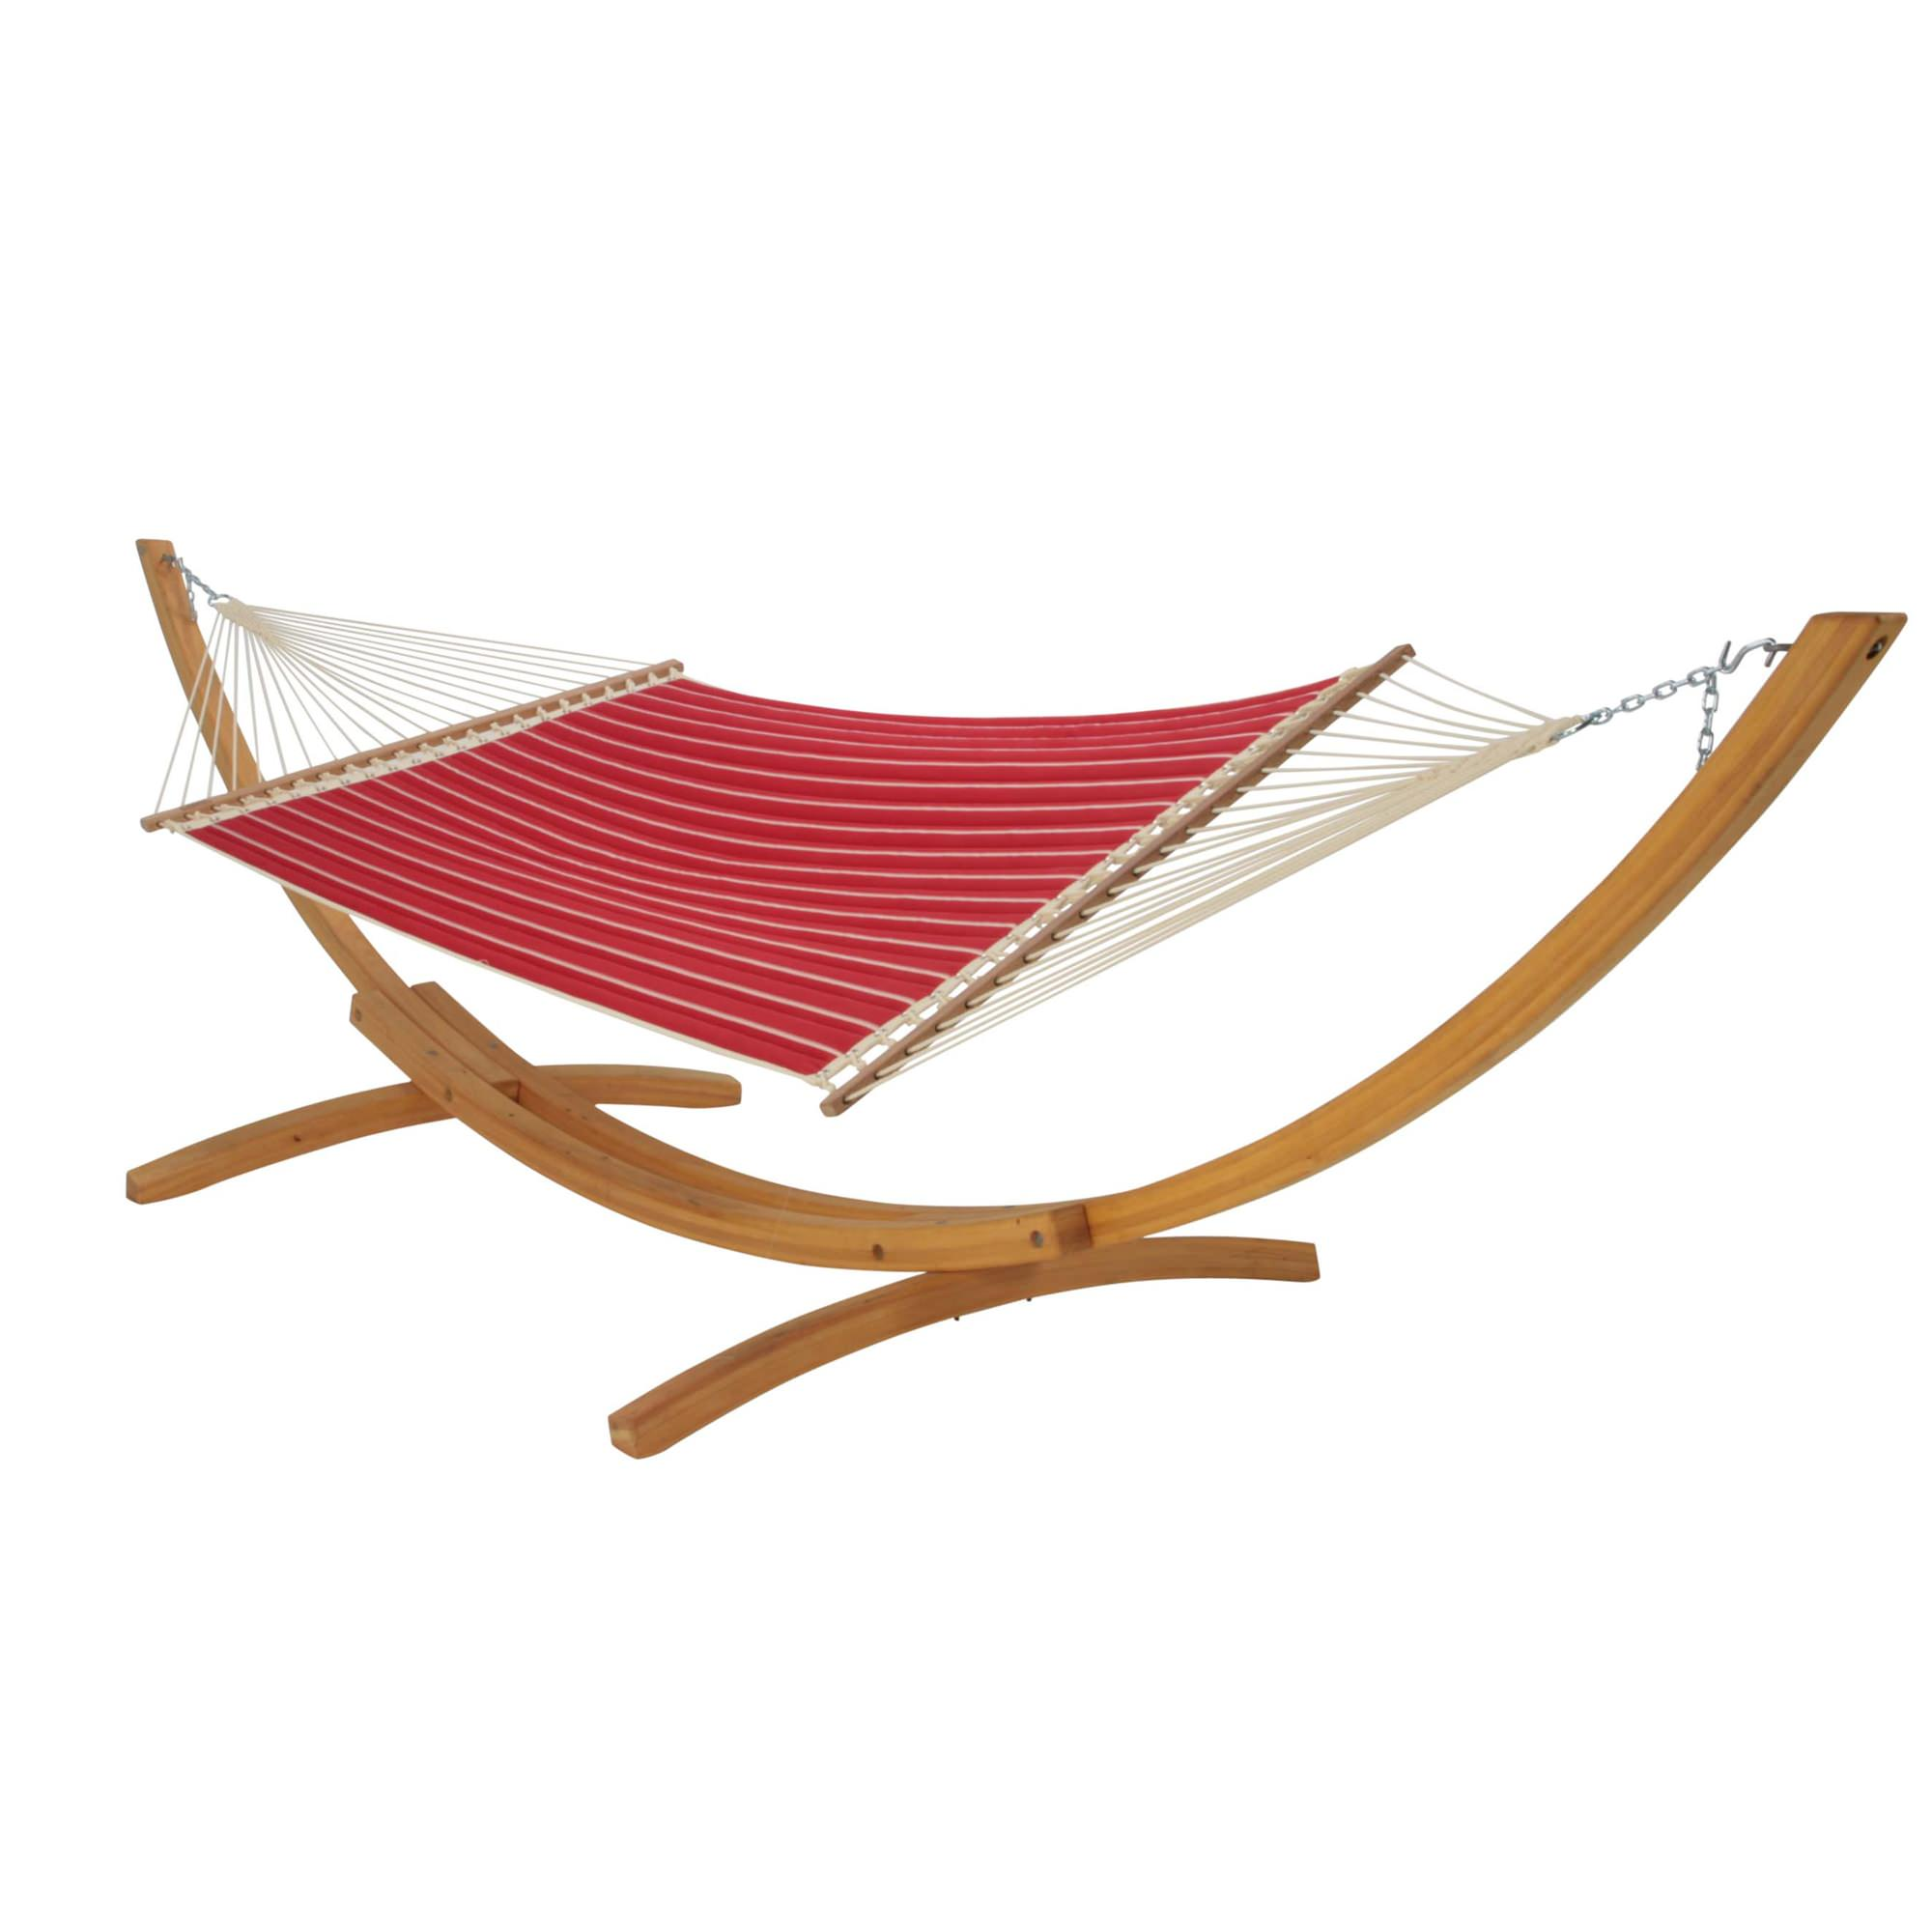 Hatteras Hammocks Classic Red Stripe Quilted Hammock